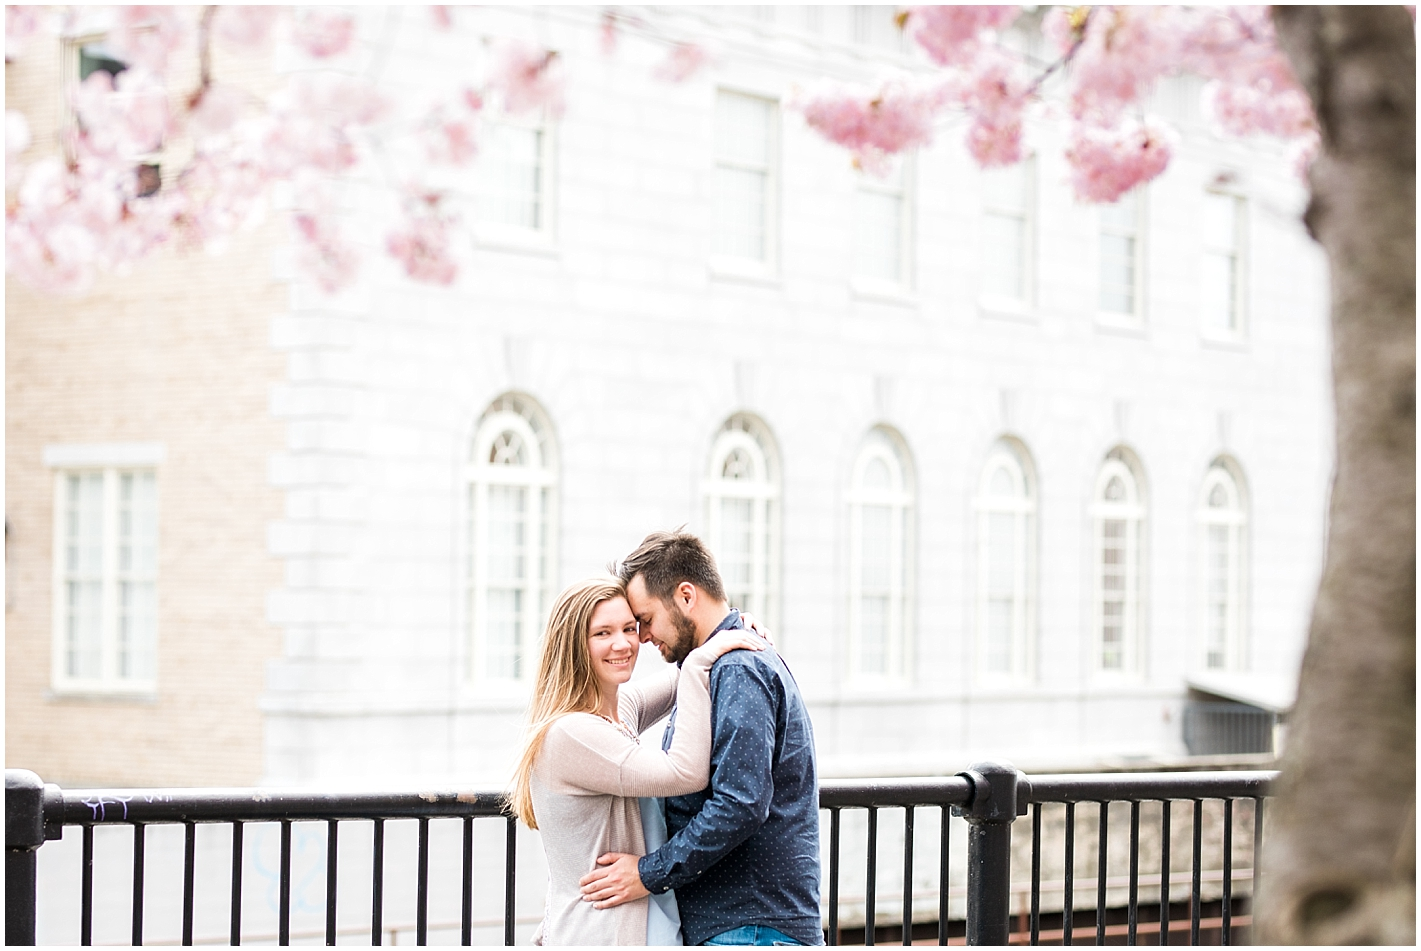 Spring blooming Engagement Session By Alyssa Parker Photography